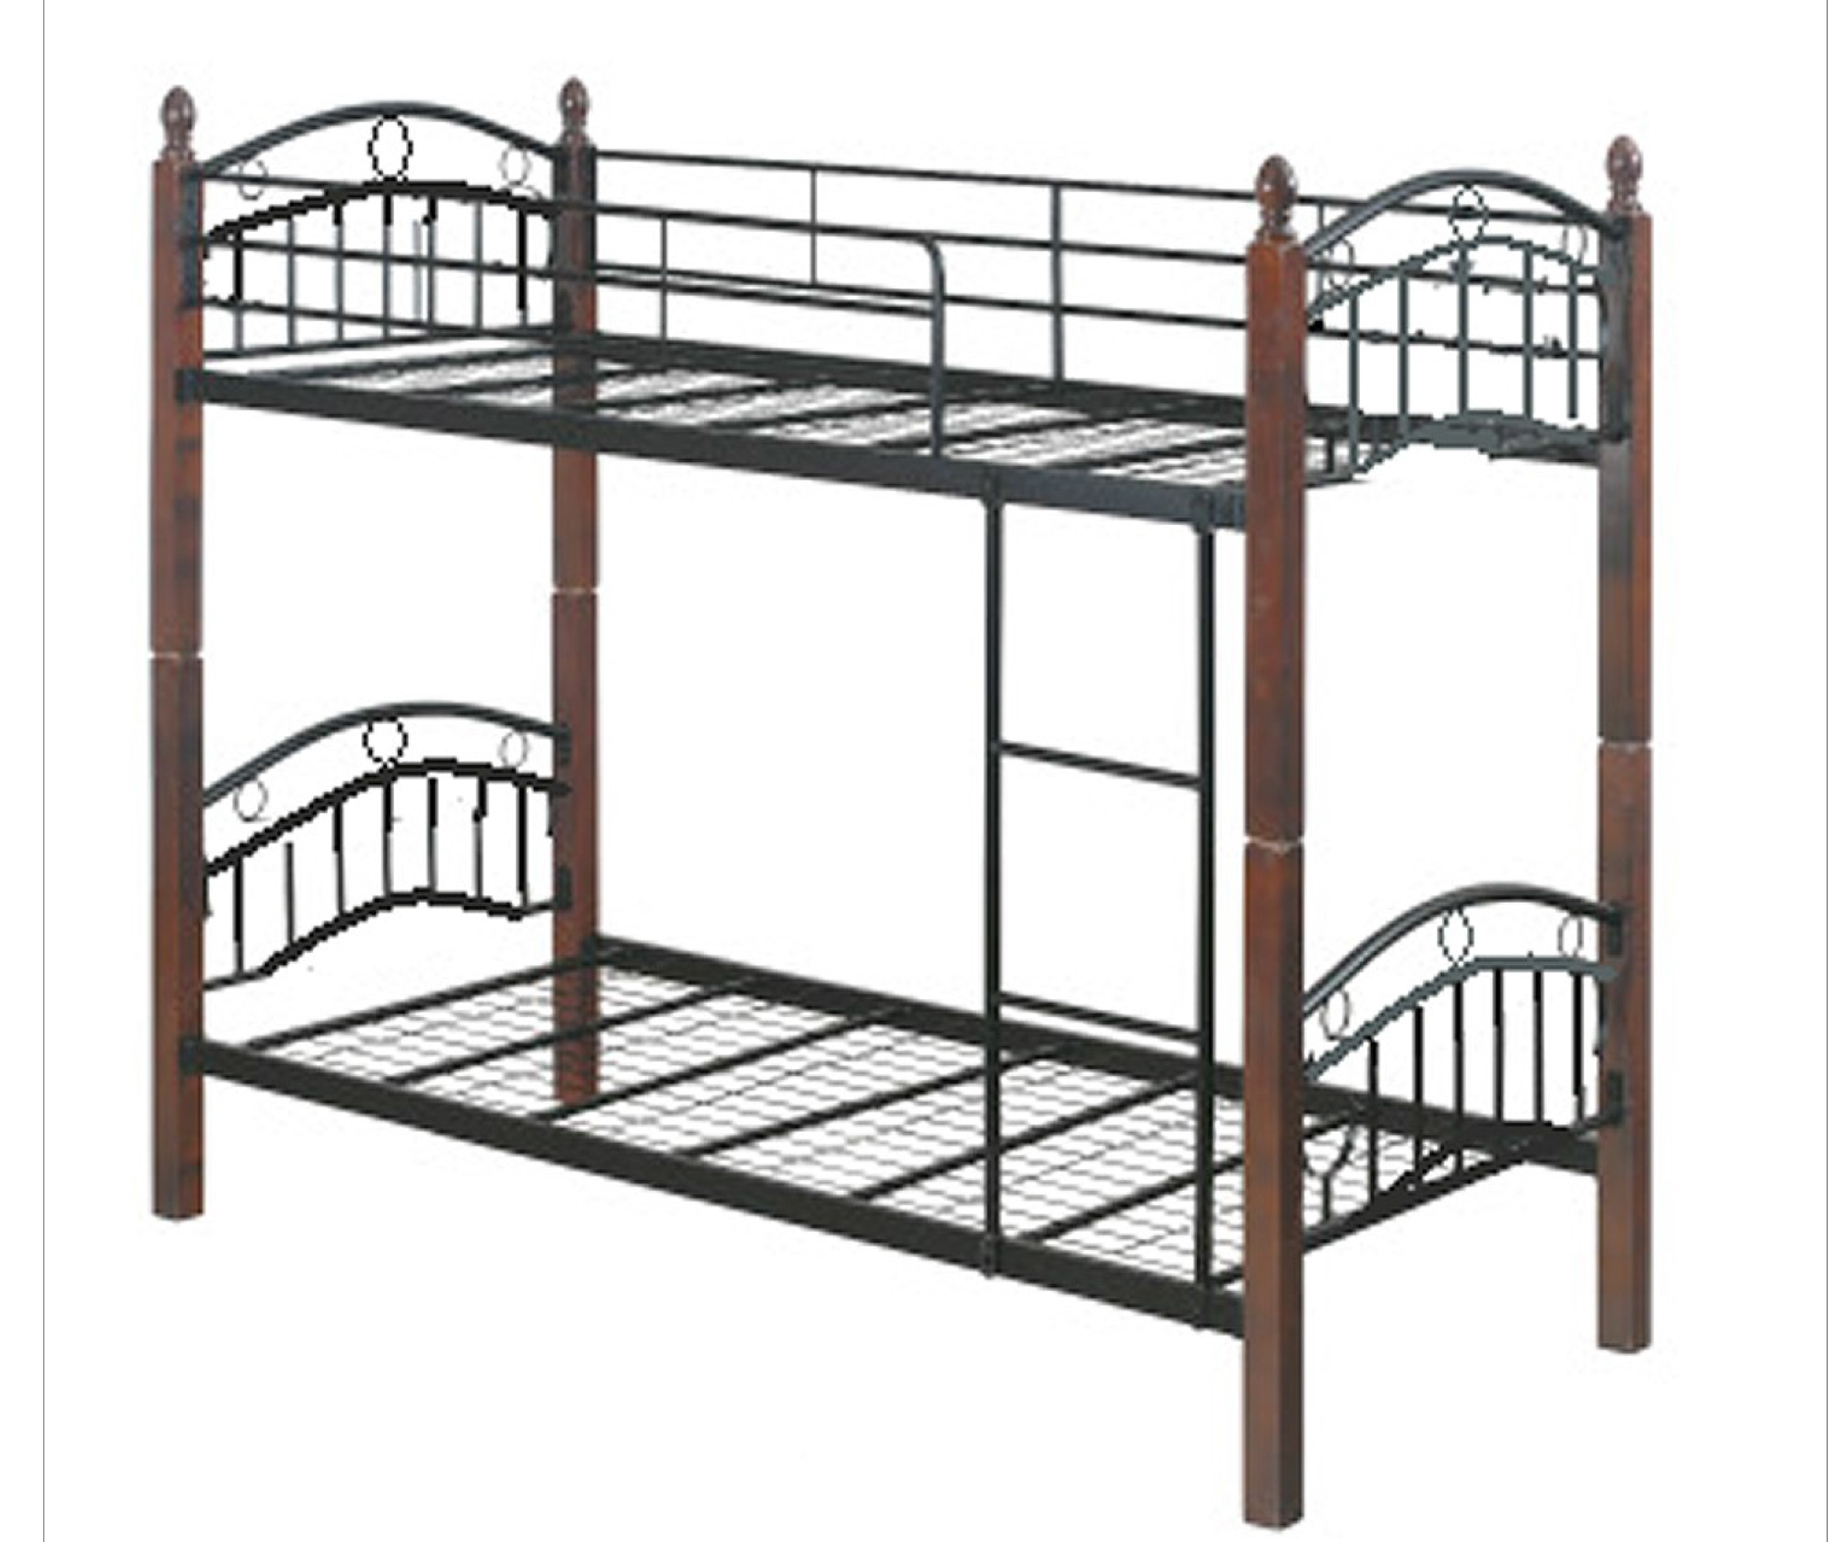 Double Decker Bed Framedew foam double deck bed frame with 4 x 36 x 75 mattress cebu